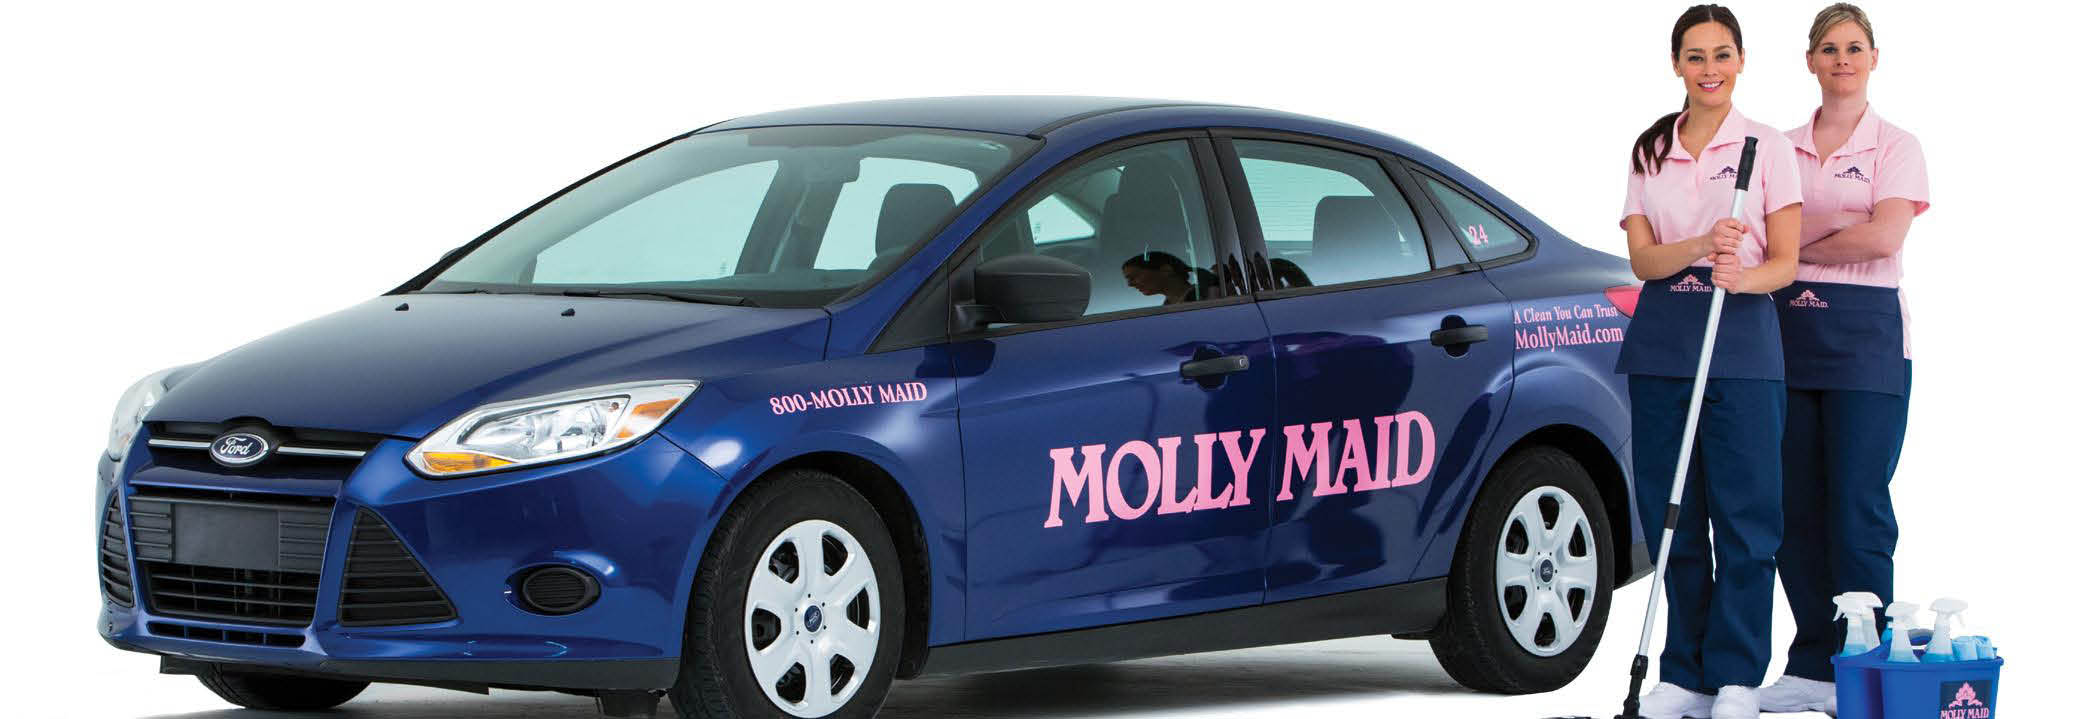 molly maid professional cleaning service maid service toledo ohio bowling green weekly clean